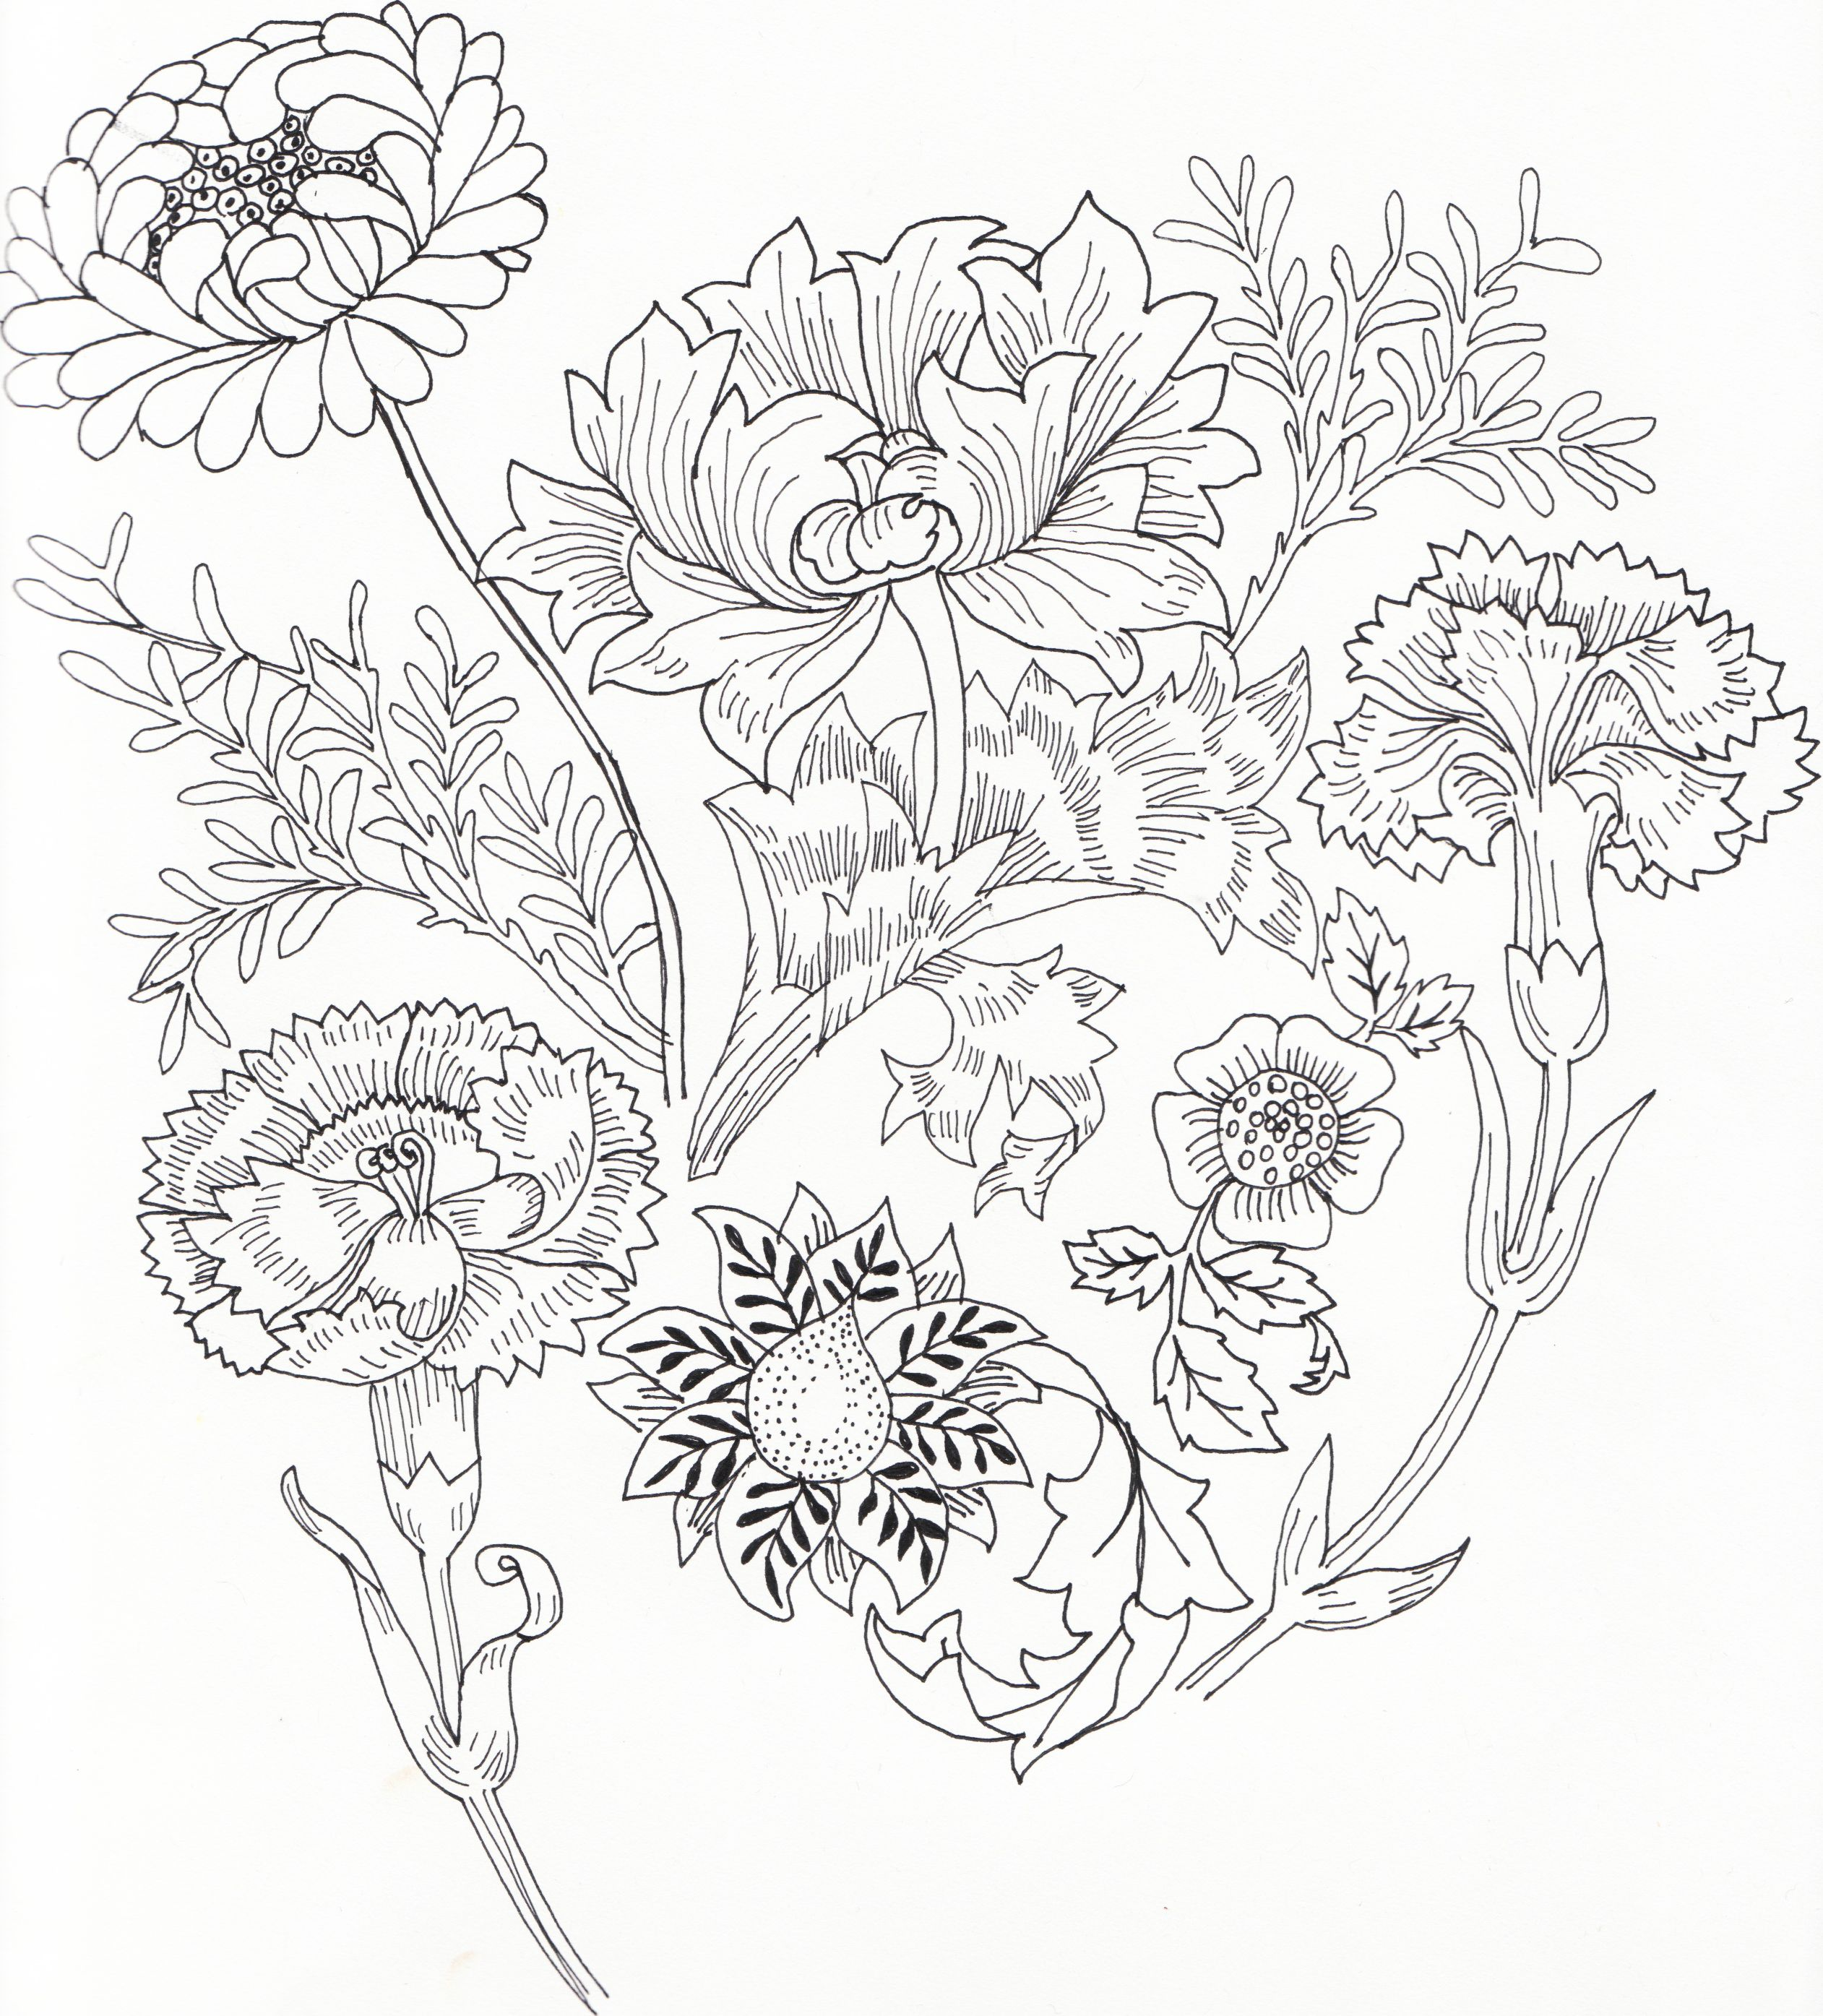 william morris embroidery - Google Search … | Embroidery | Pinte…